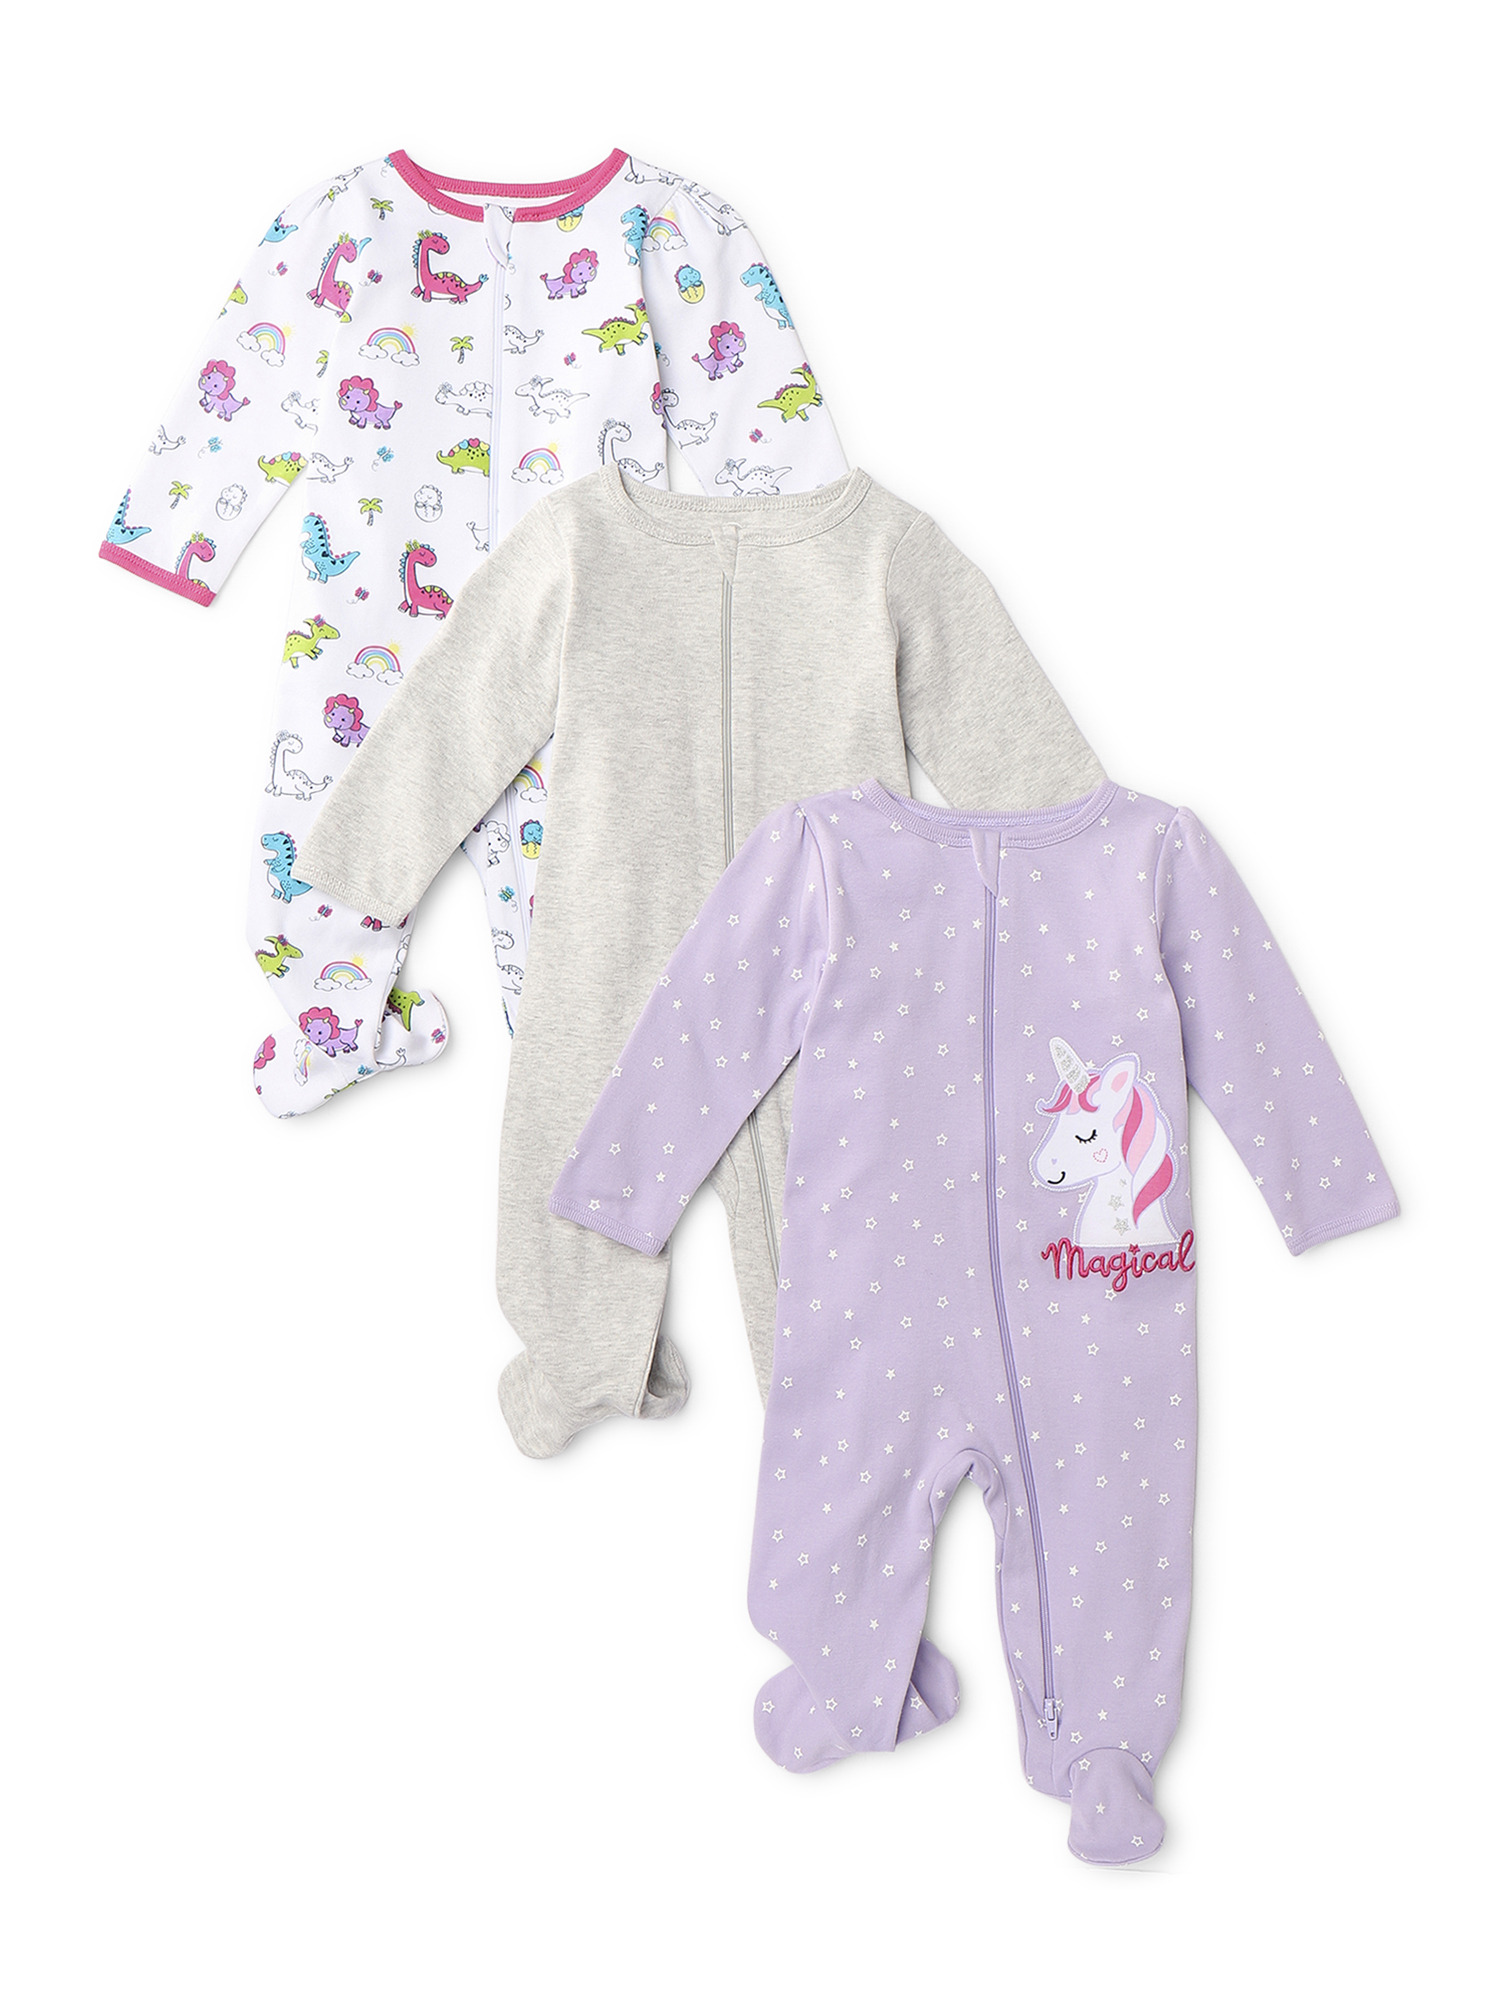 Wonder Nation Baby Girls 3 Pack Pants Size 3-6 Months NEW Pink